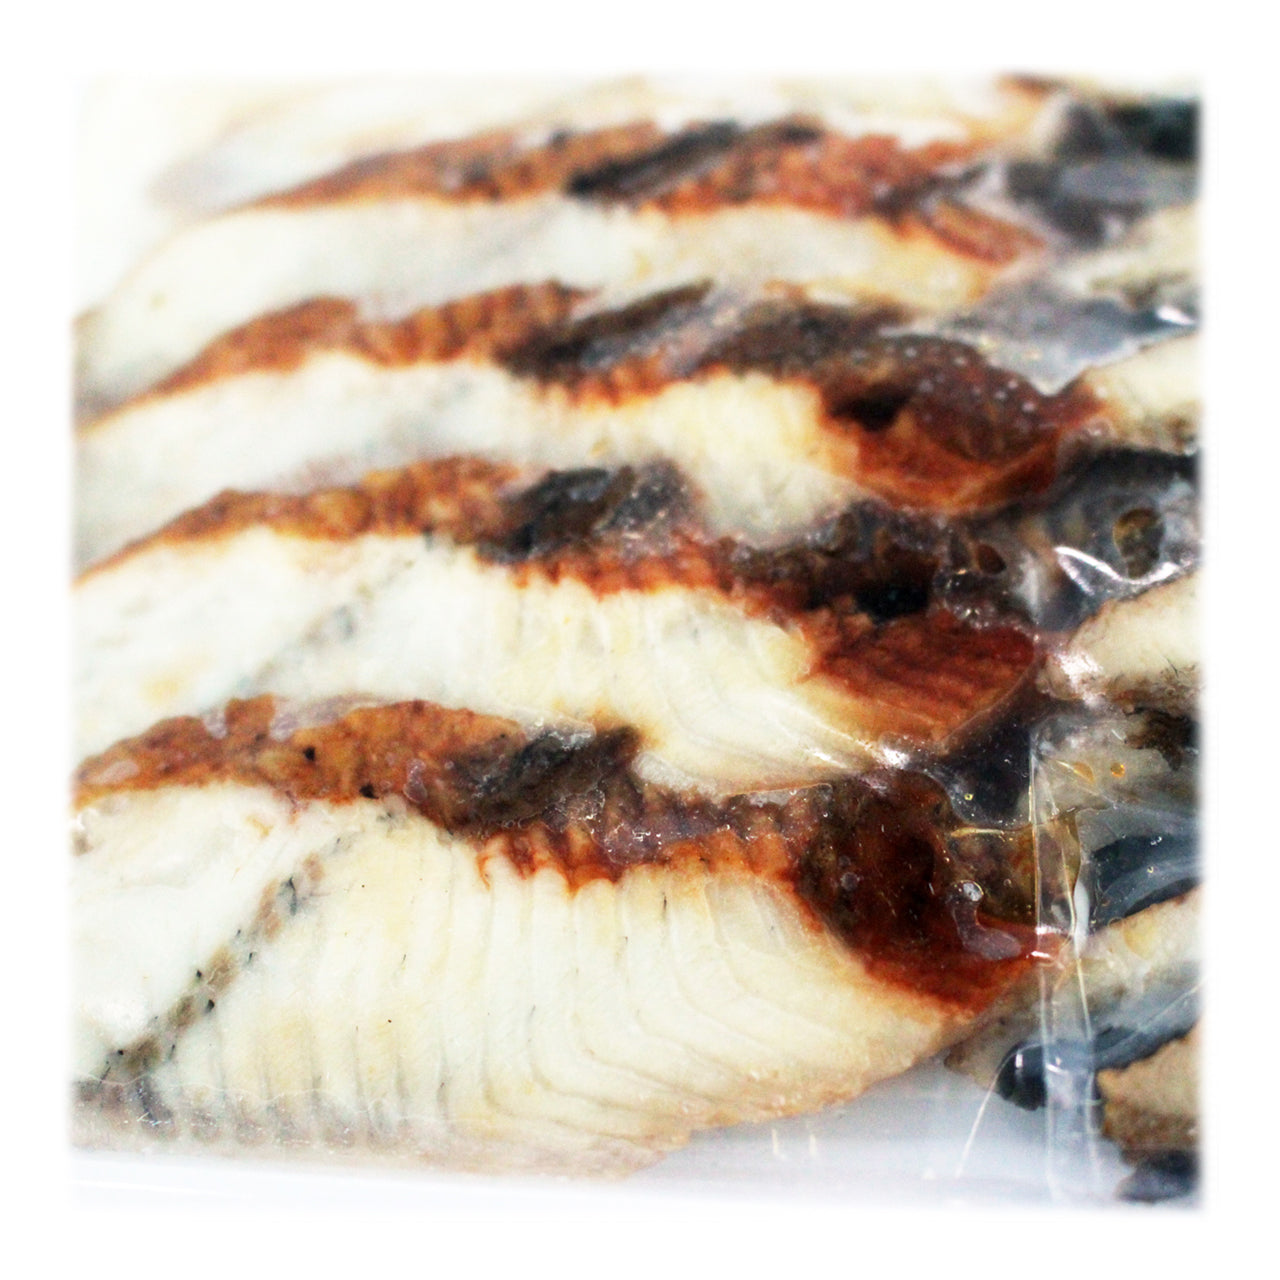 Sliced Unagi Eel 20pcs 7oz (200g) (SKU: 70280)